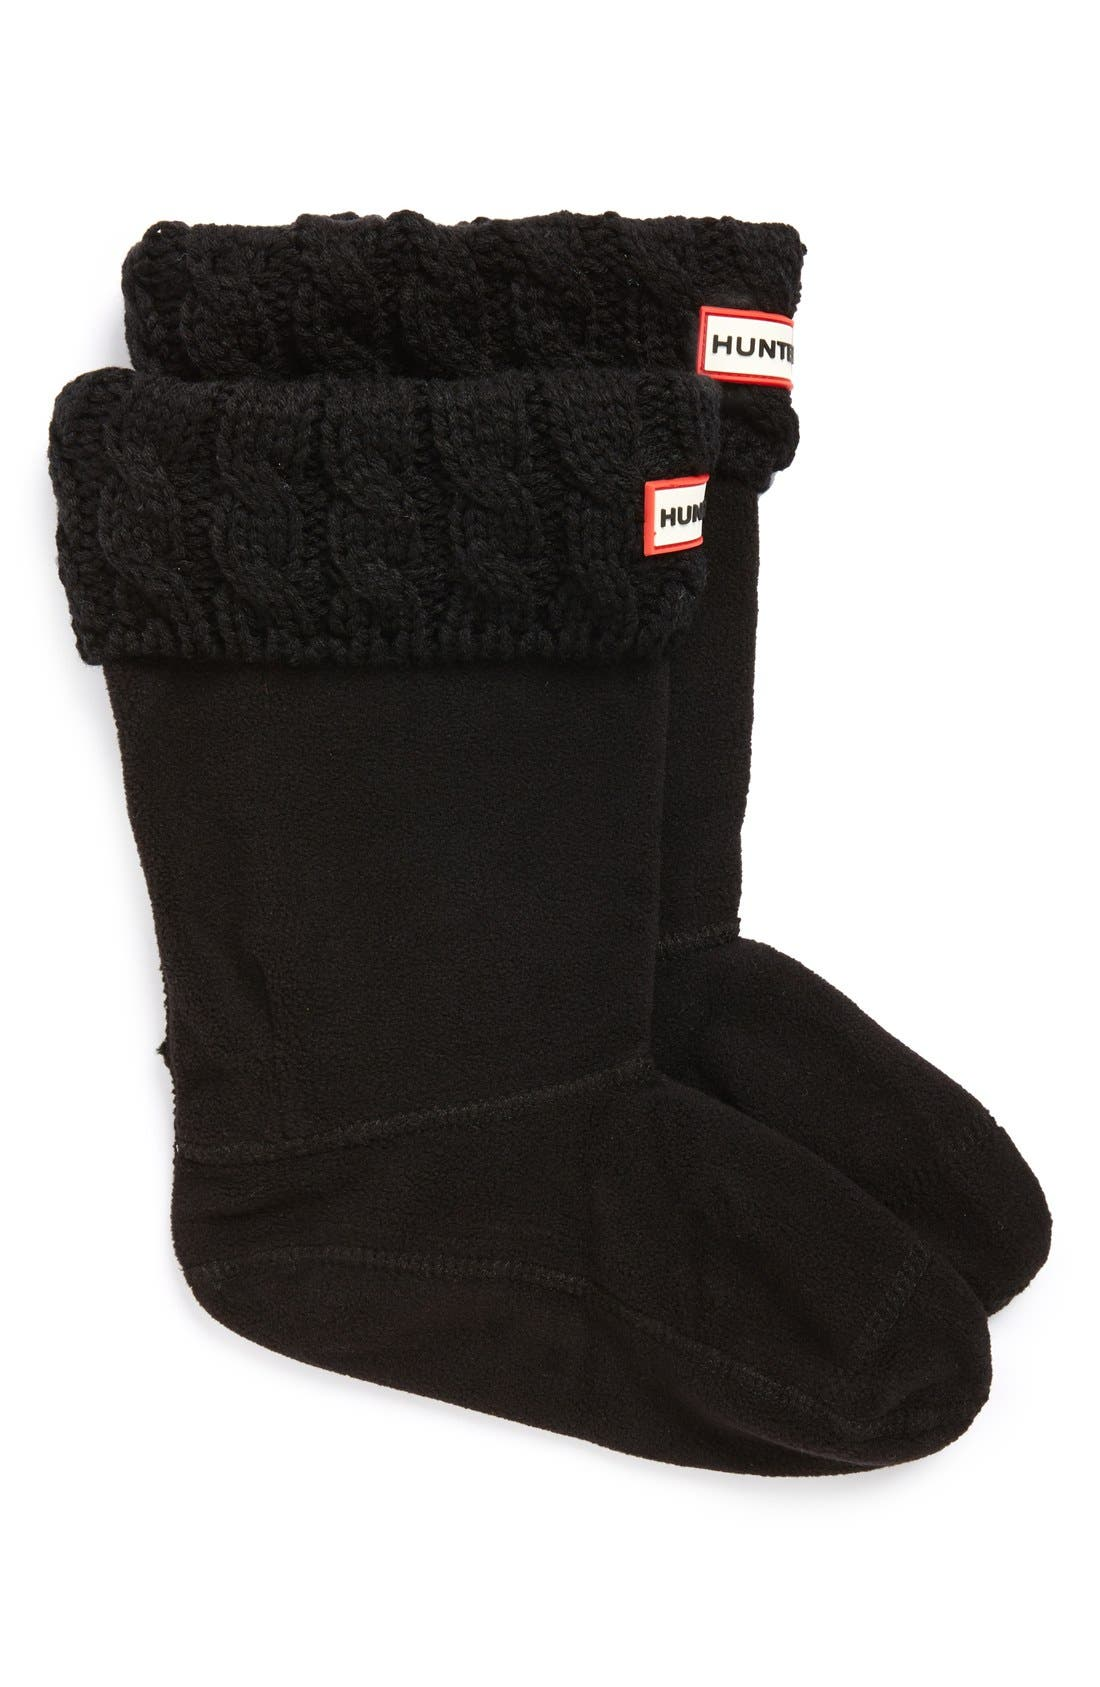 Hunter Cable Knit Cuff Welly Boot Socks (Walker, Toddler, Little Kid & Big Kid)